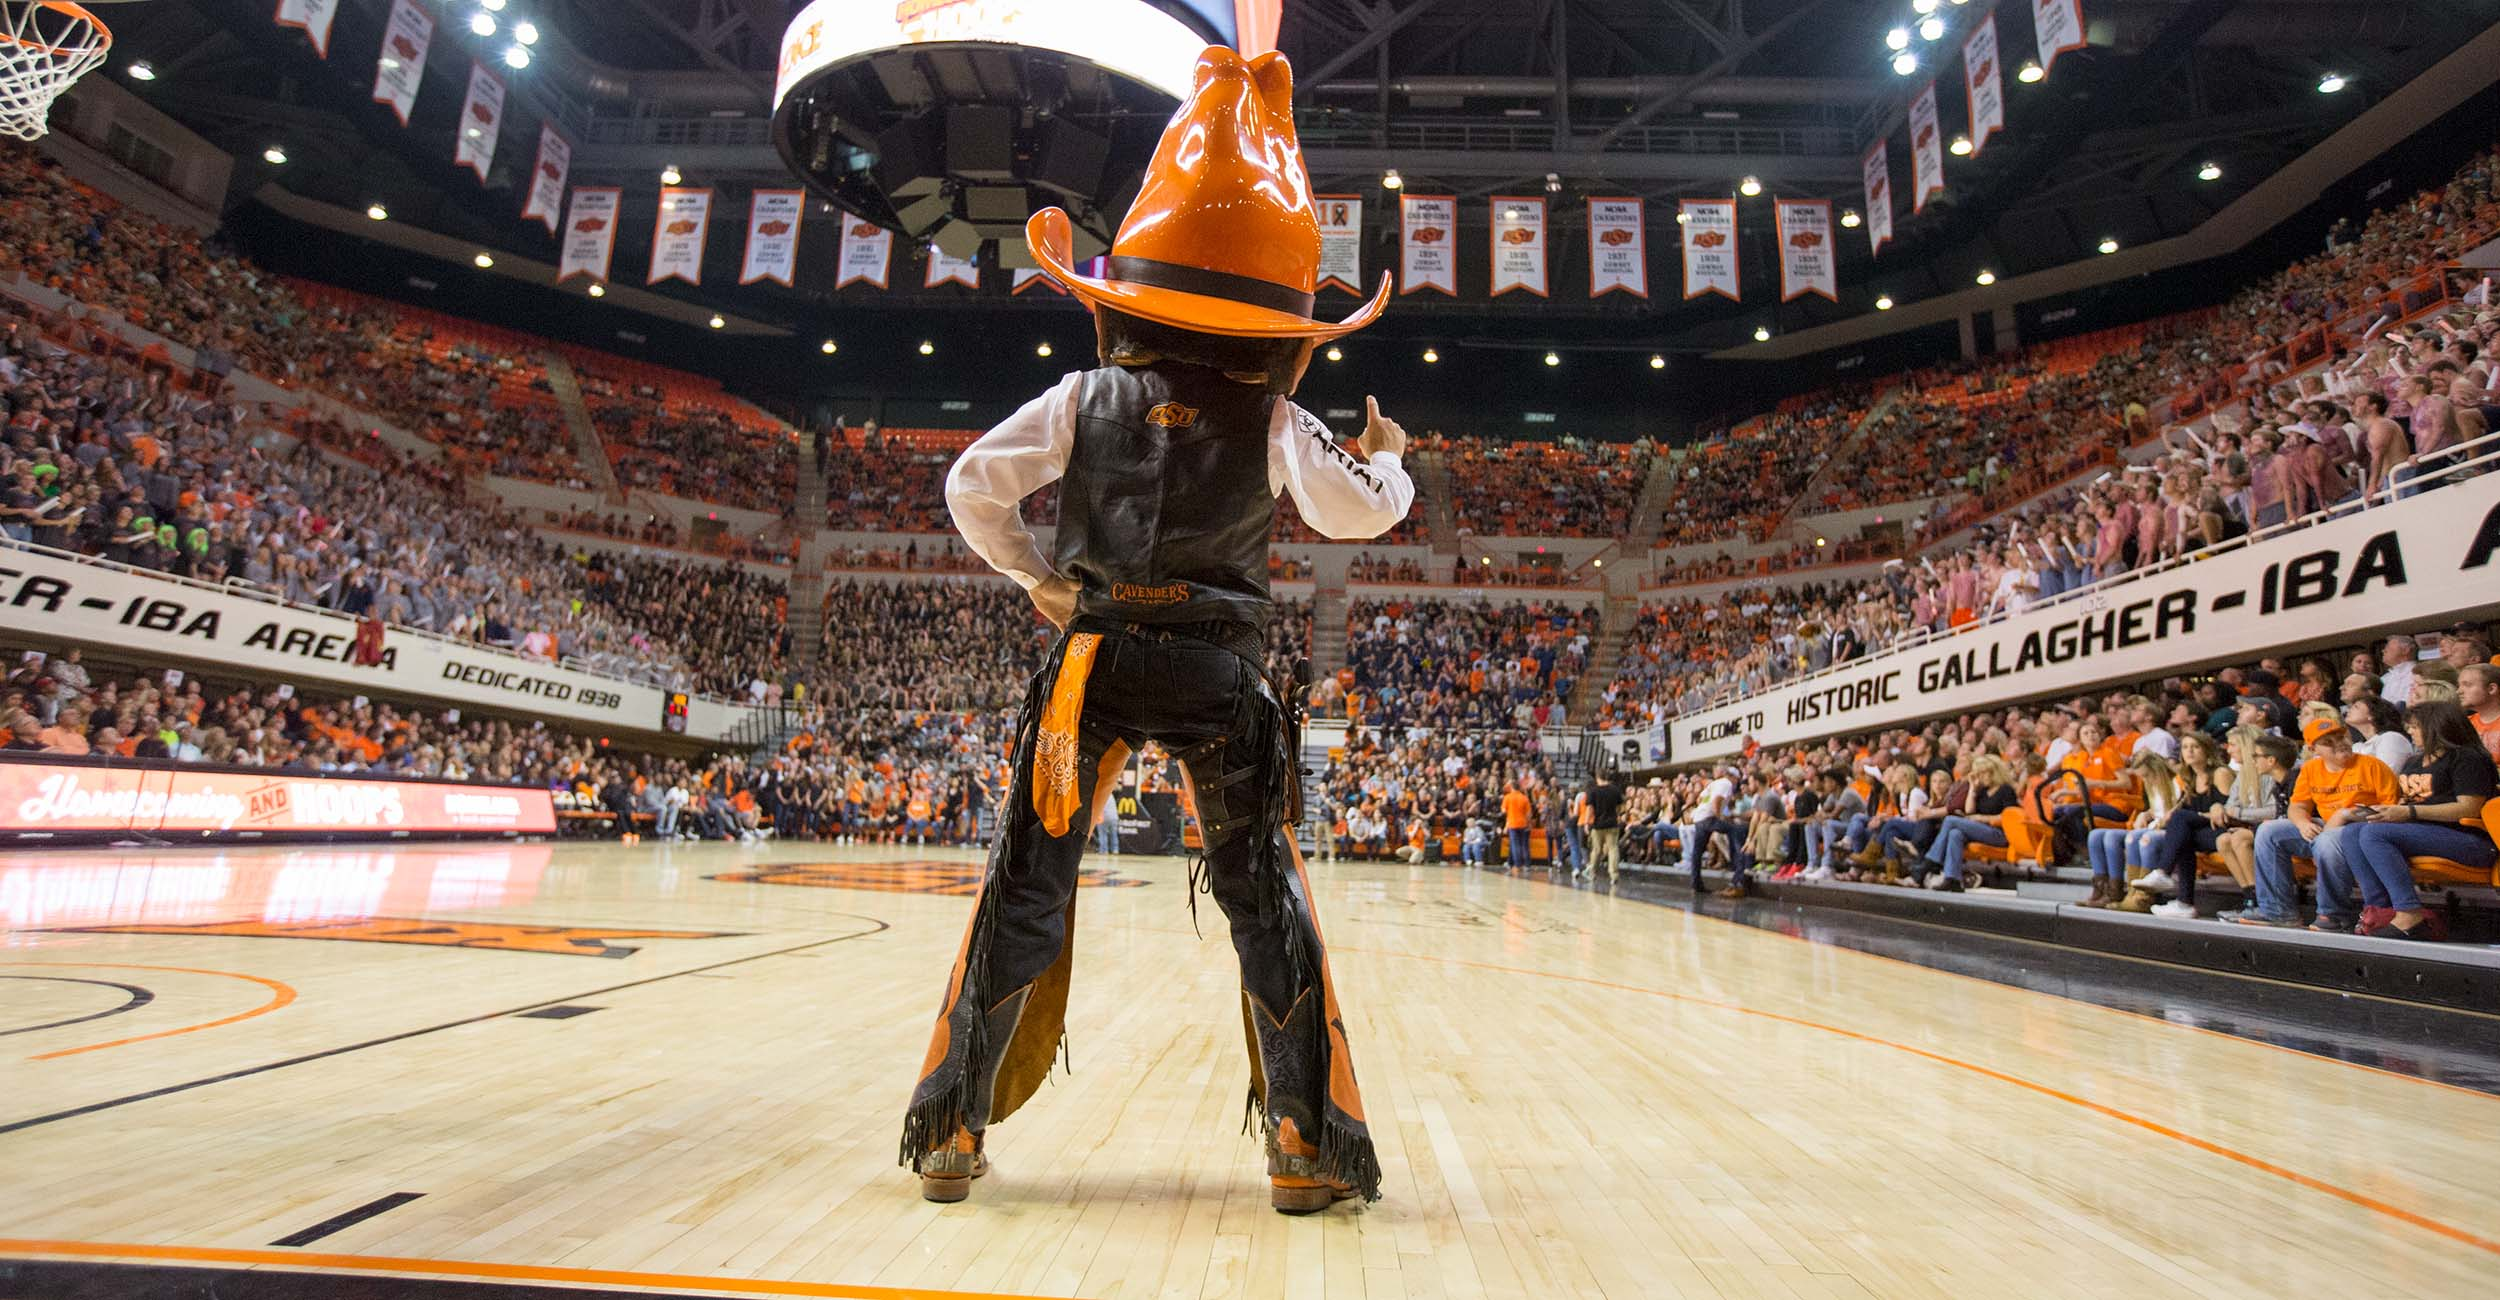 A photo of Pistol Pete at Gallagher-Iba Arena.